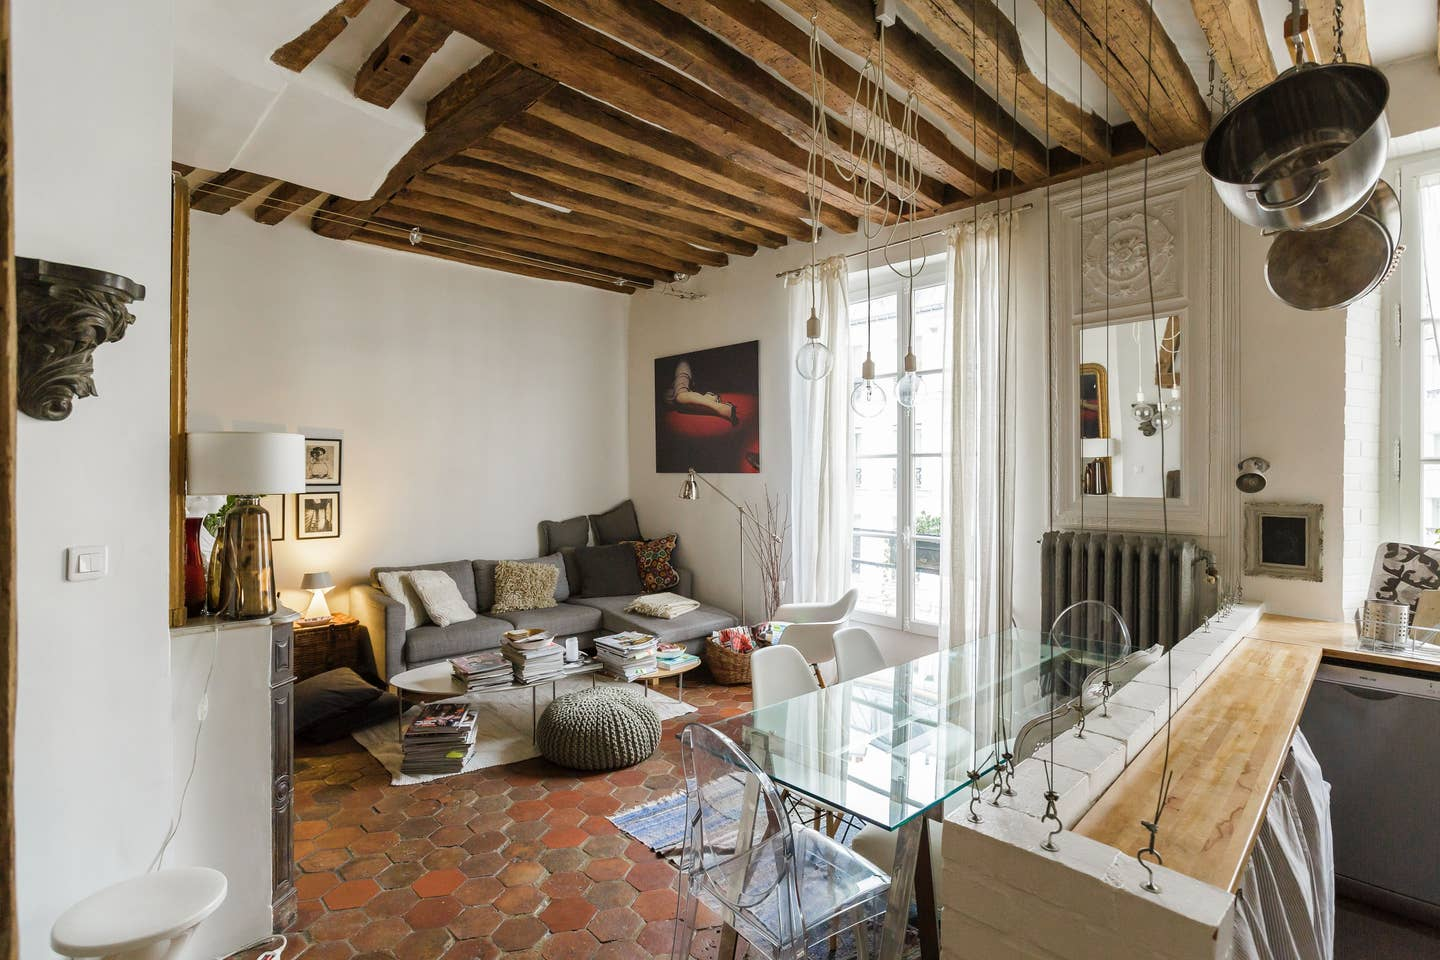 The Nordroom - A Cozy Apartment in an 18th-Century Building in Paris